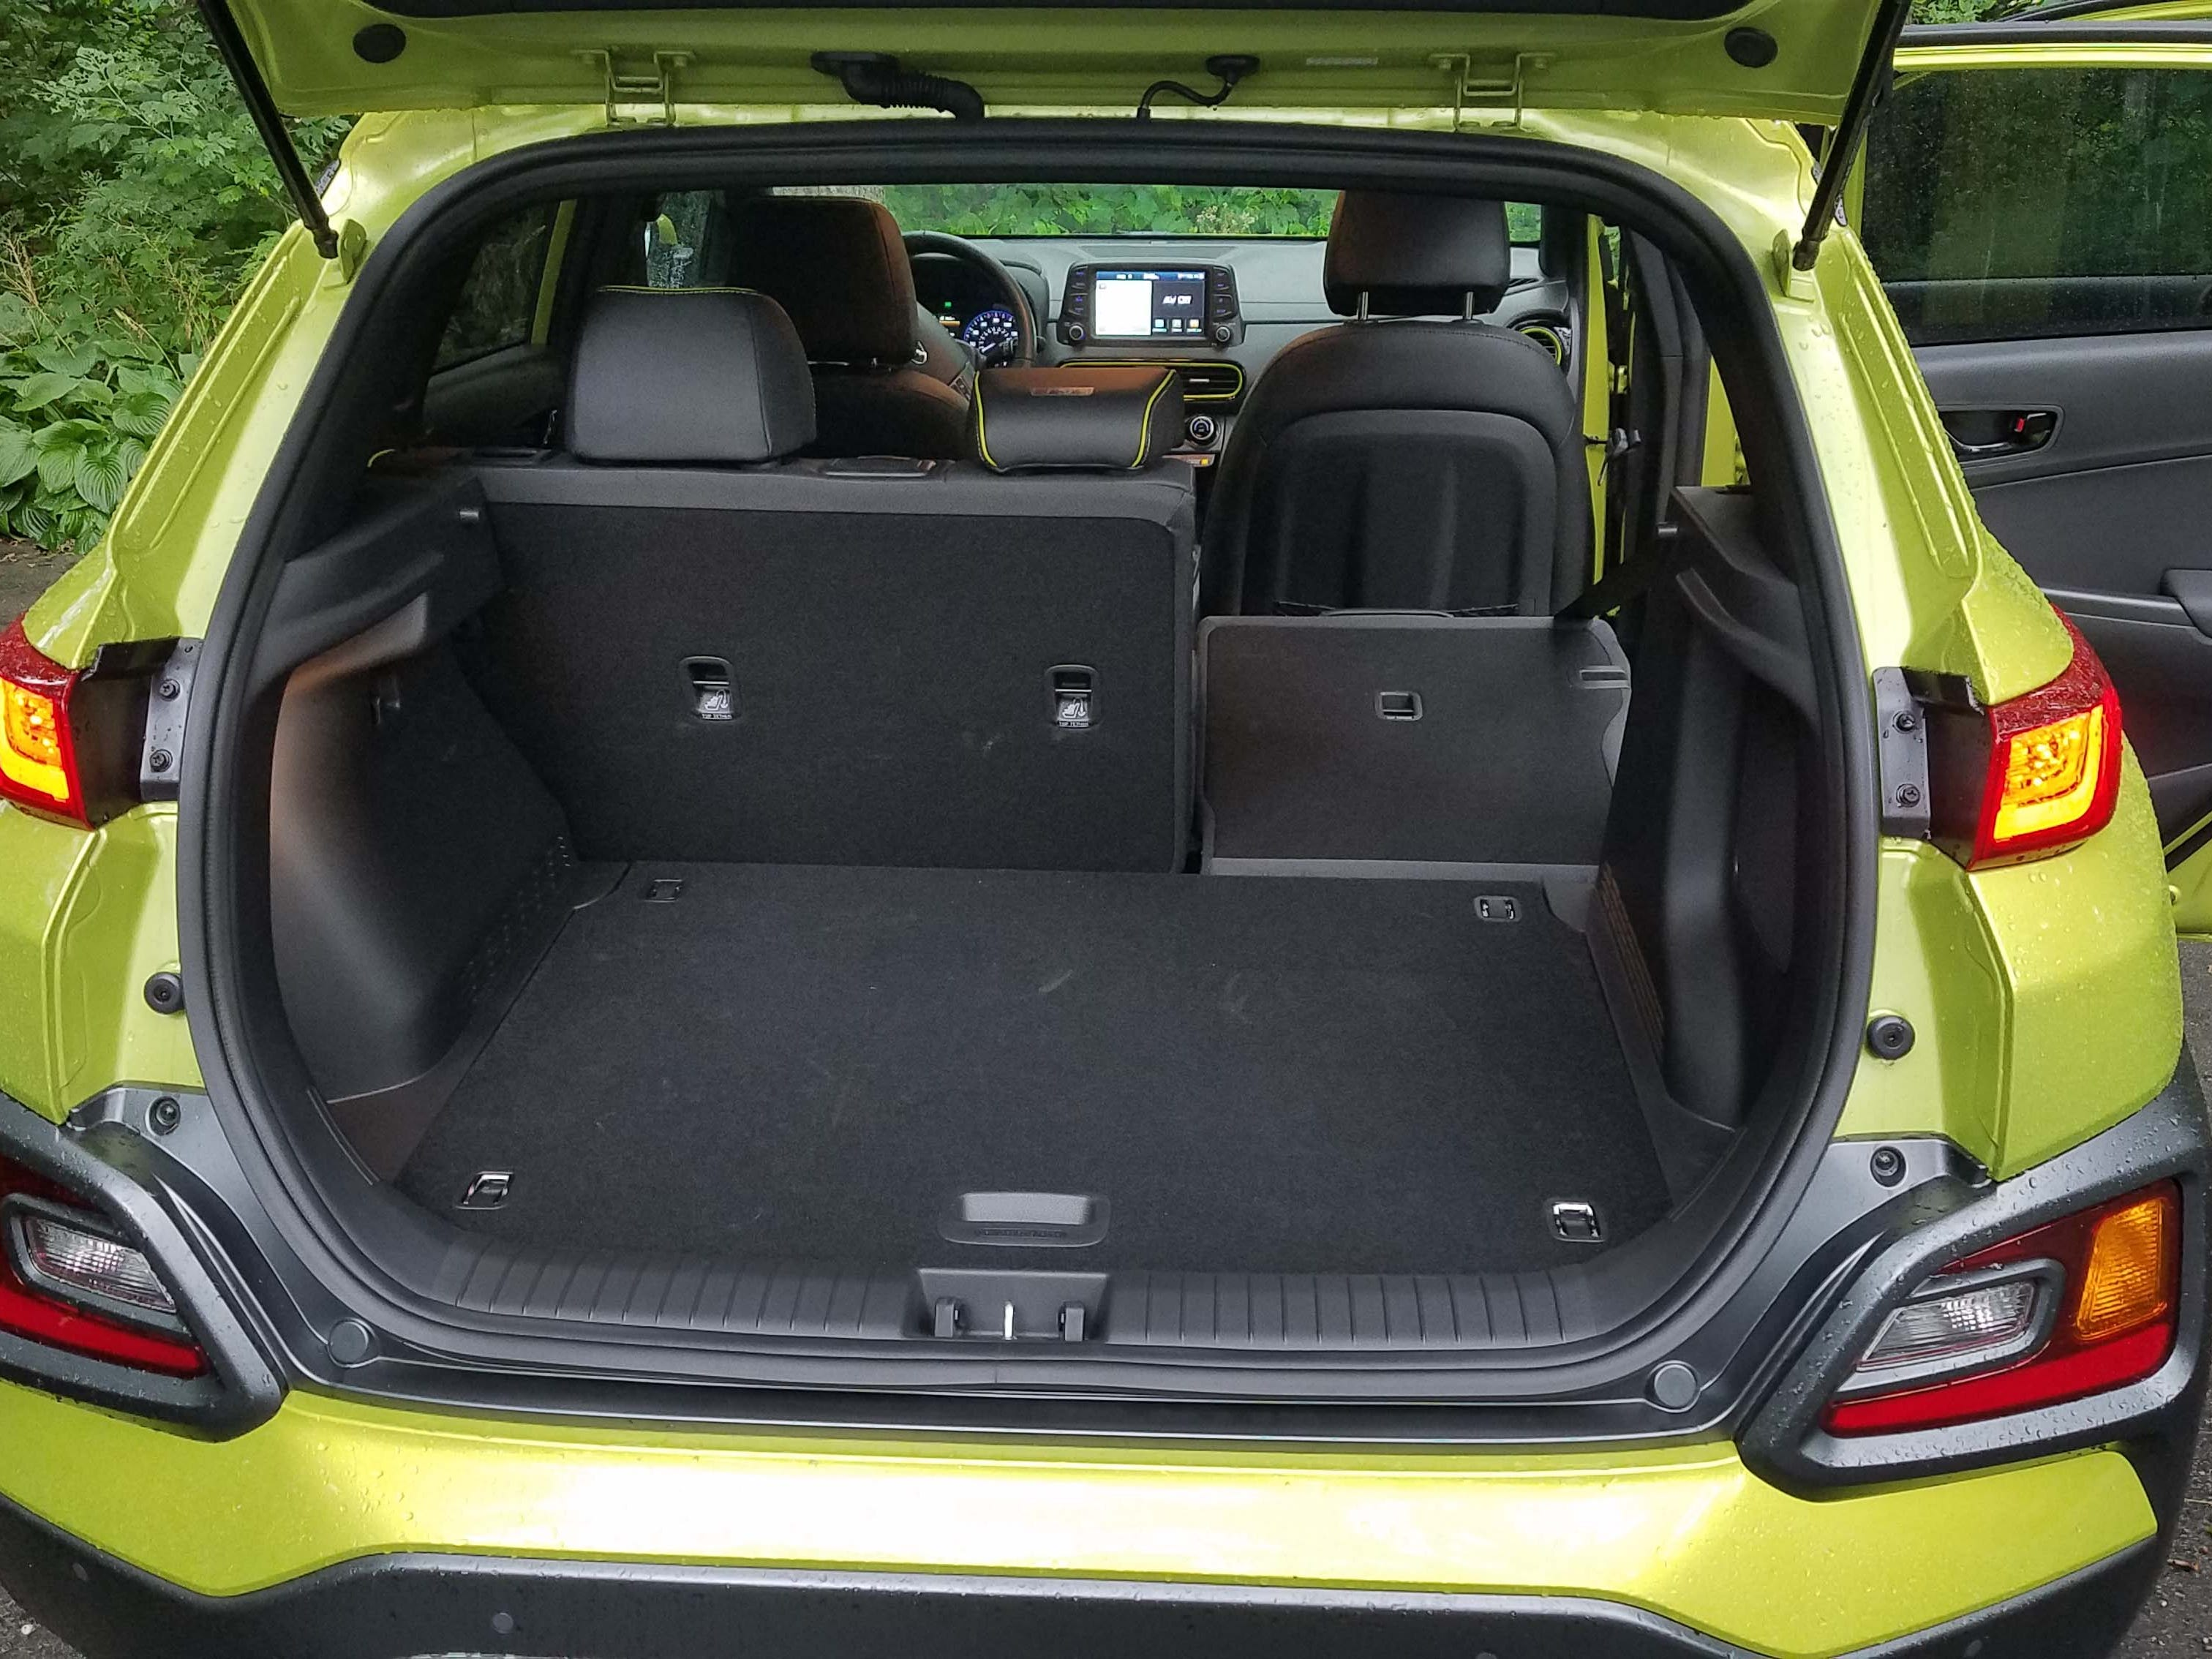 Best-in-class cargo room, fold flat rear seats, and electronic options that would make a luxury car proud, the 2018 Hyundai Kona is an impressive package.